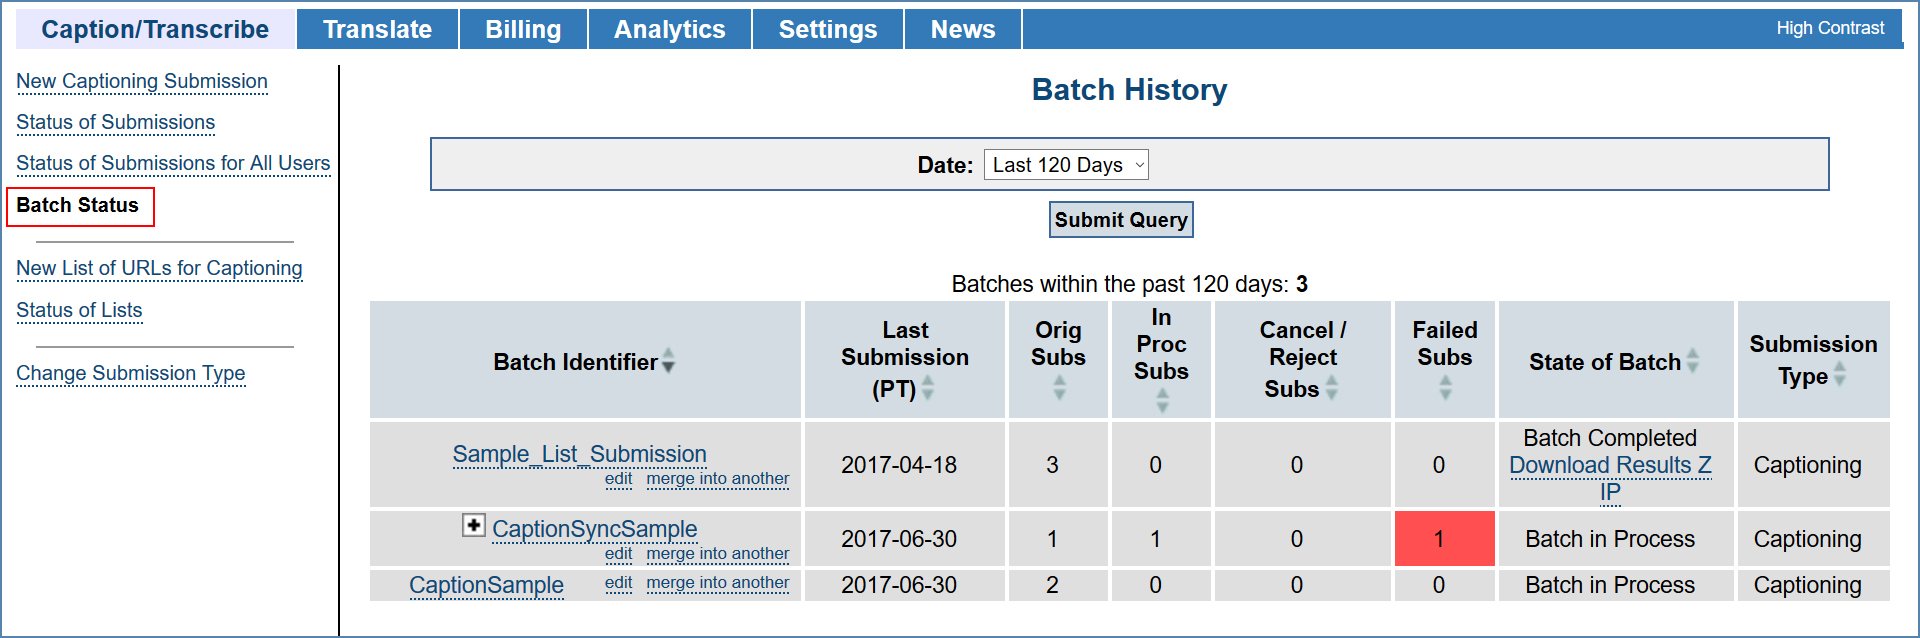 Image of Batch History page